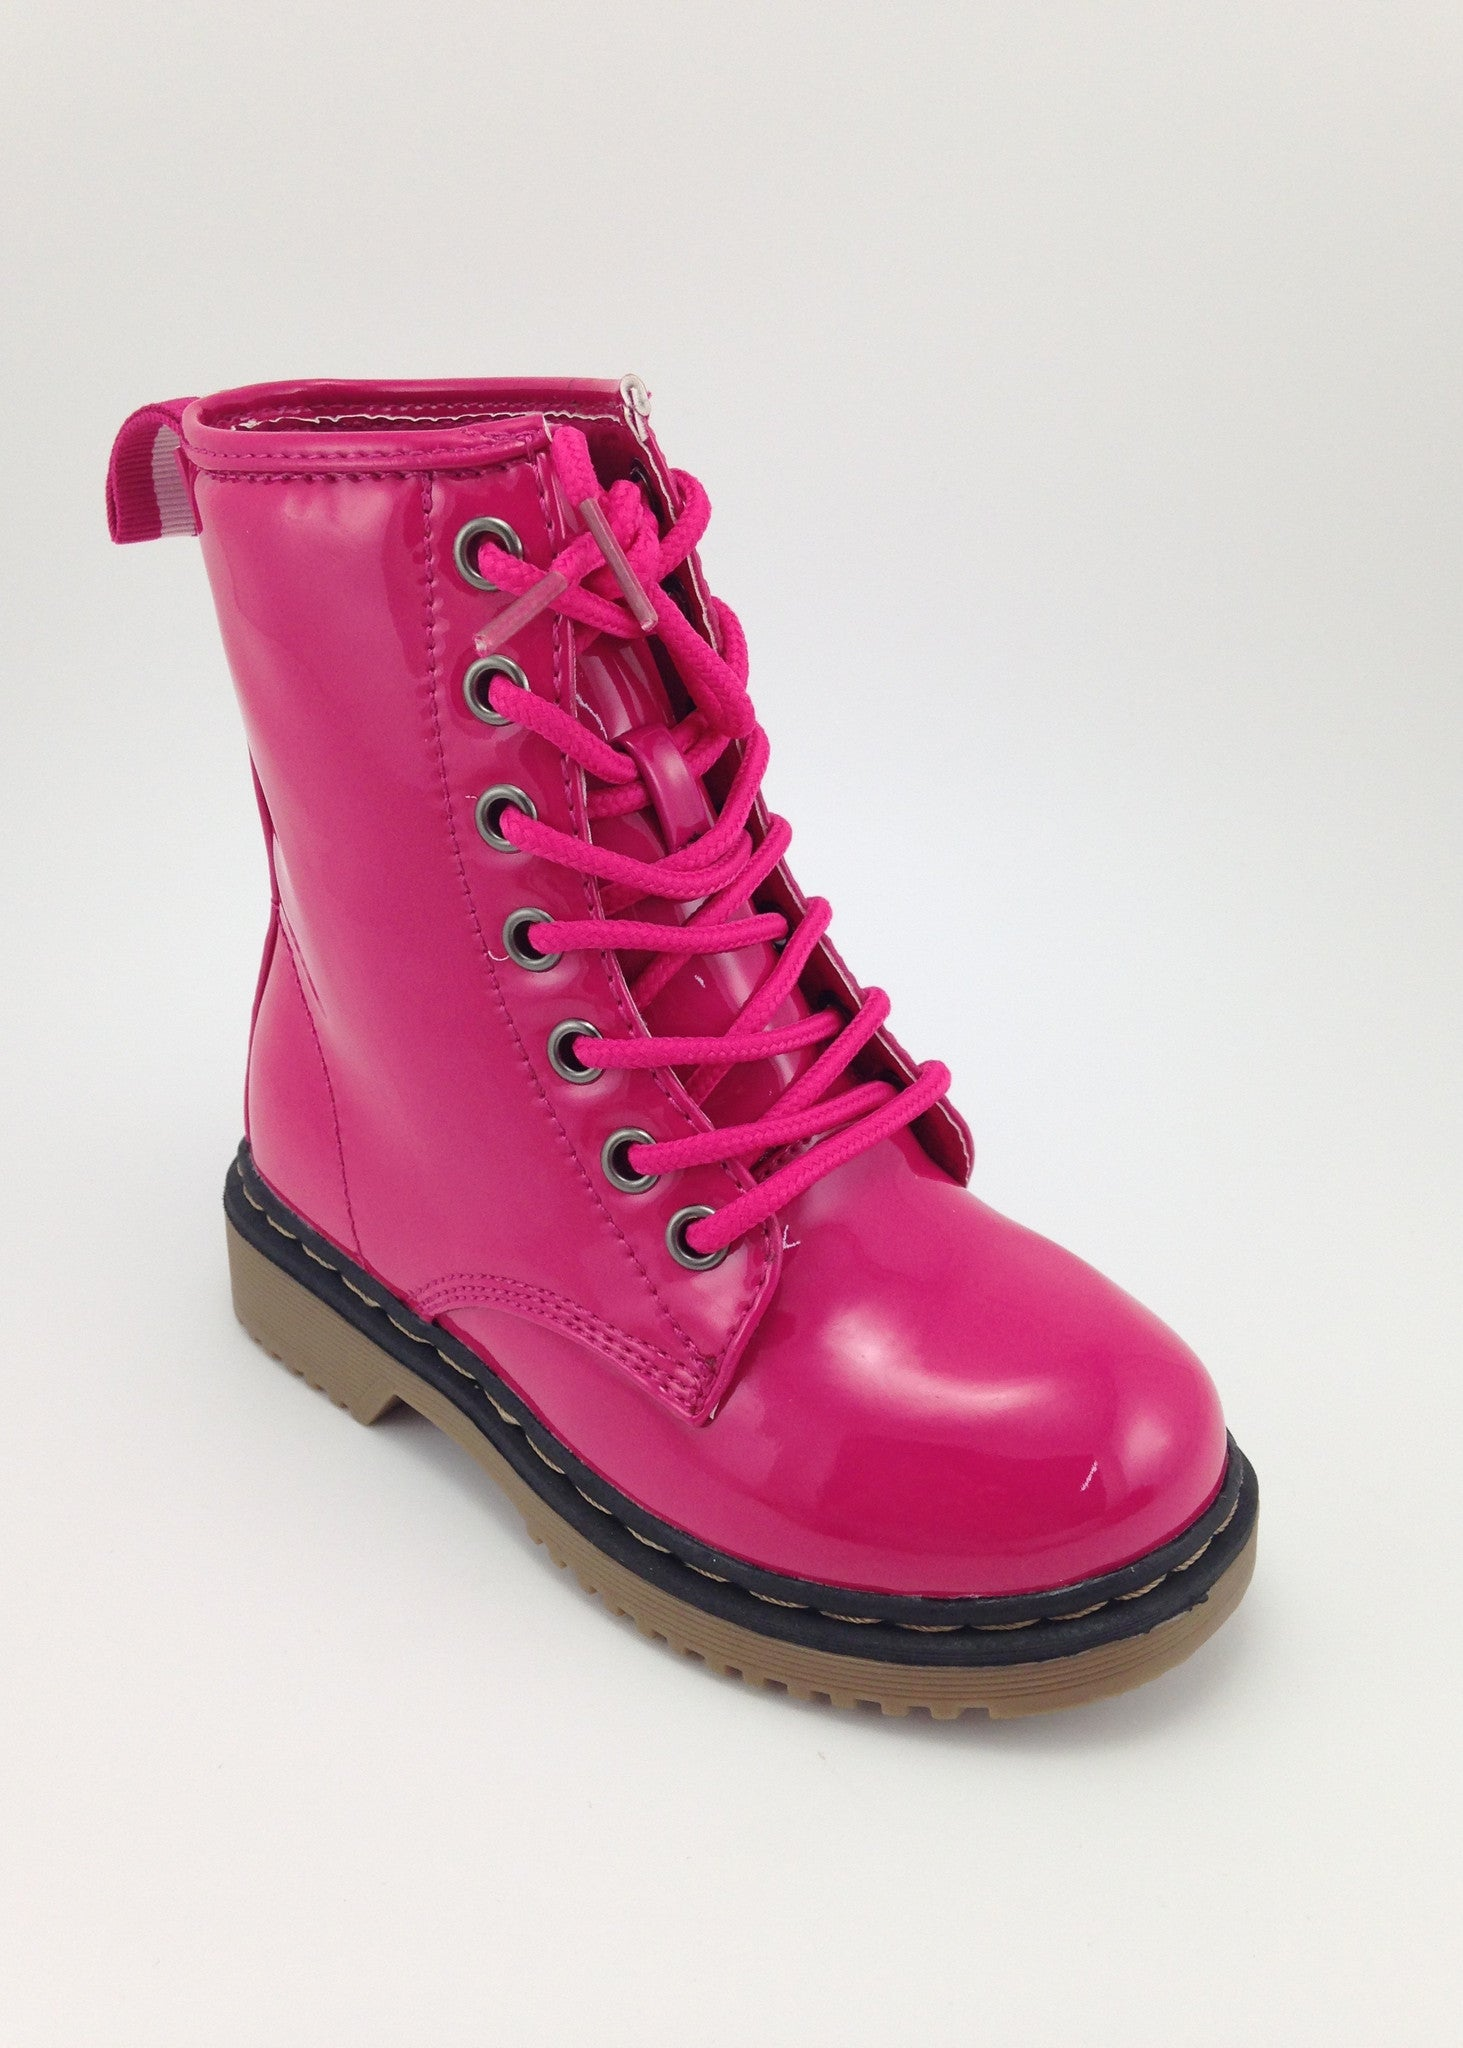 Girls Pink Patent Lace Up Boots | Boots